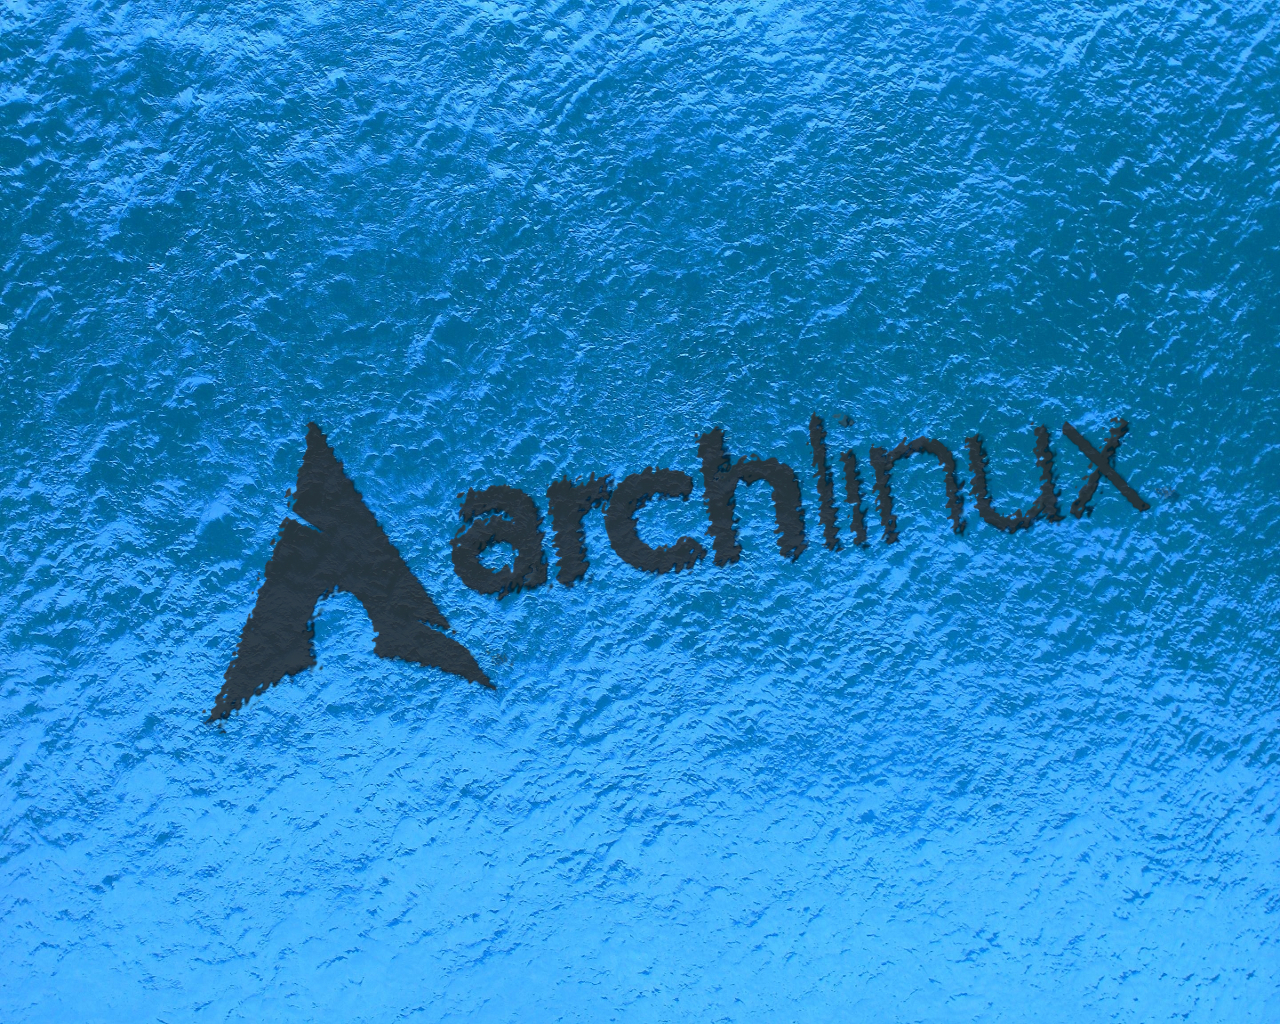 water Linux arch linux HD Wallpaper